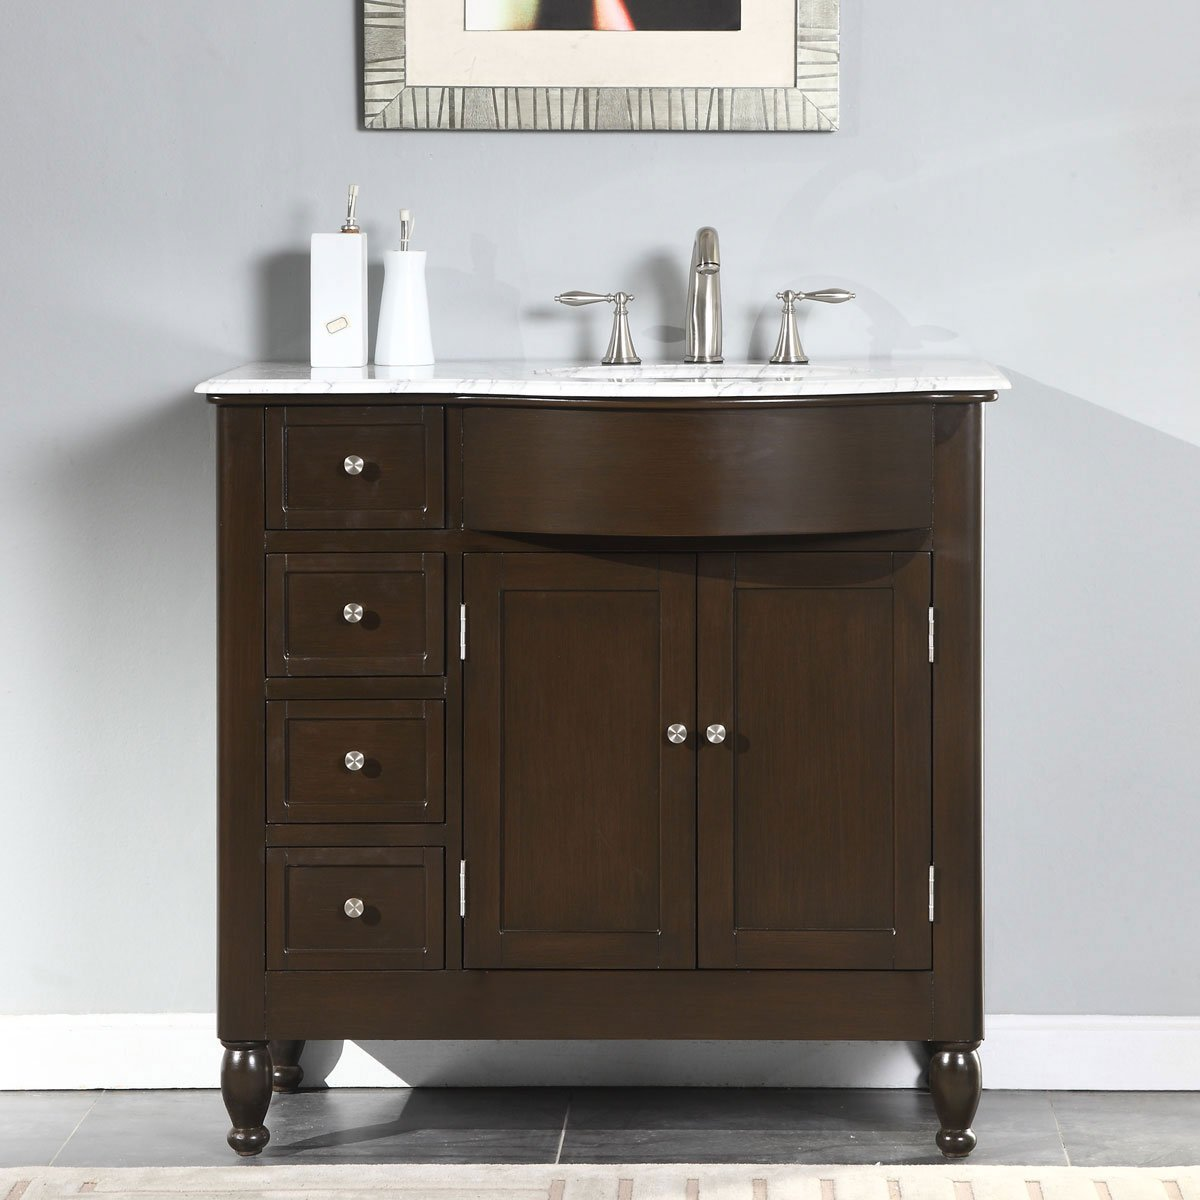 Silkroad Exclusive White Marble Top Right Sink Bathroom Vanity with Furniture Cabinet, 38-Inch by Silkroad Exclusive